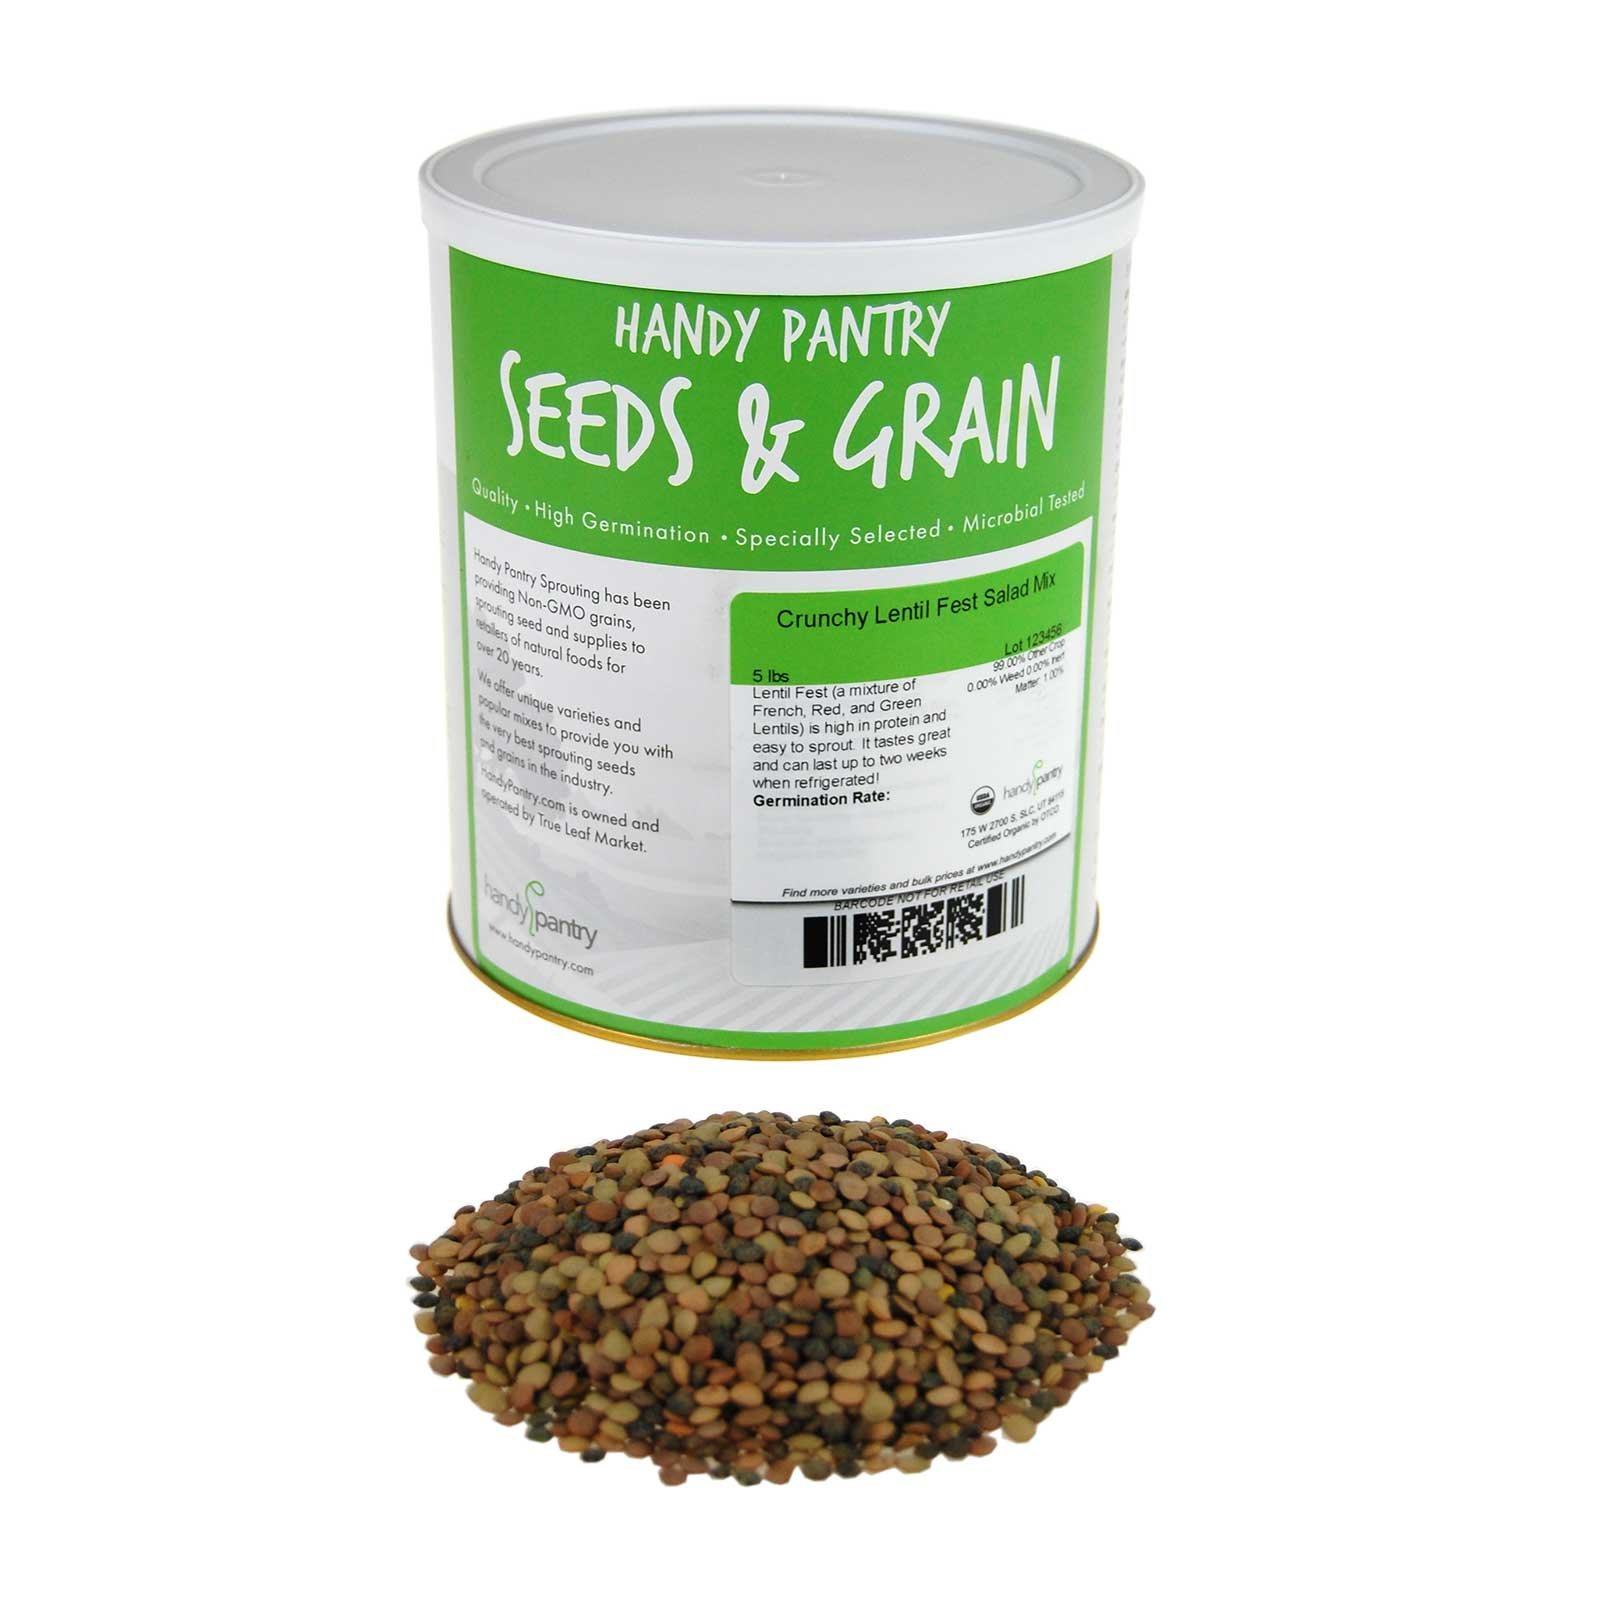 Handy Pantry Crunchy Lentil Fest Sprouting Seed Mix- 5 Lbs- Organic- Green, Red & French Lentils- Edible Seeds, Salad, Soup, Sprouts & Food Storage